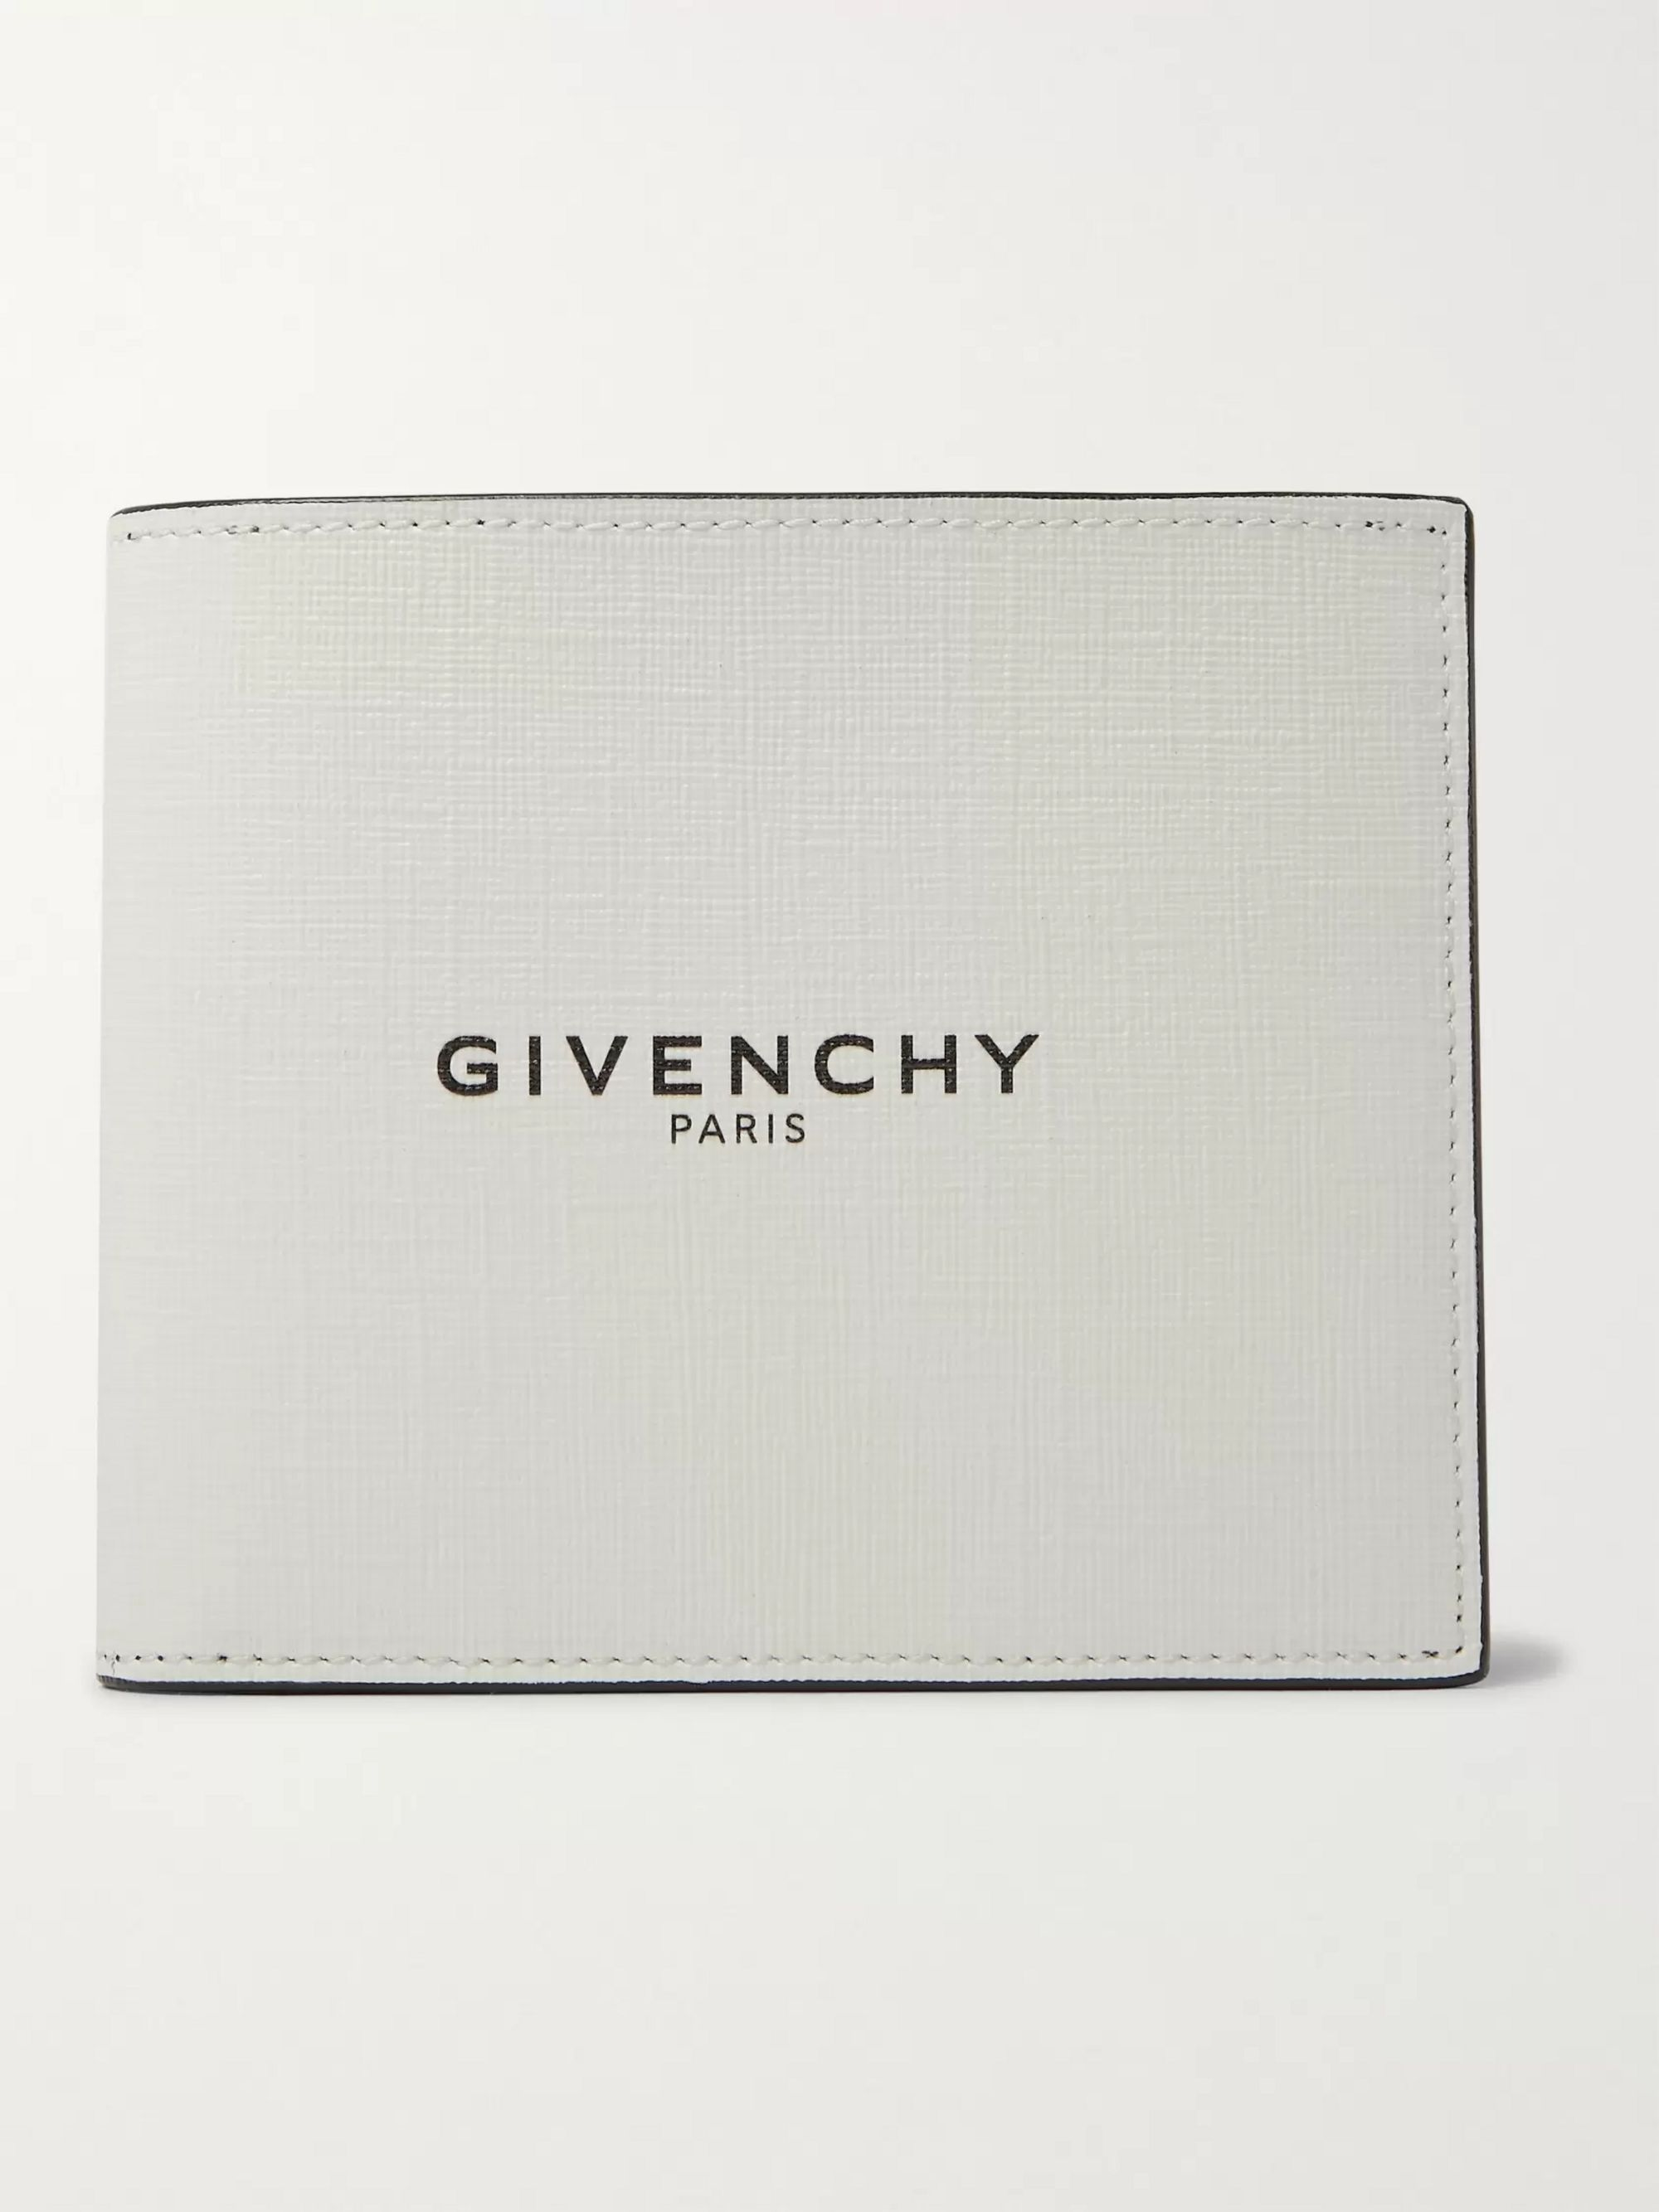 Givenchy Glow-in-the-Dark Logo-Print Coated-Canvas Billfold Wallet